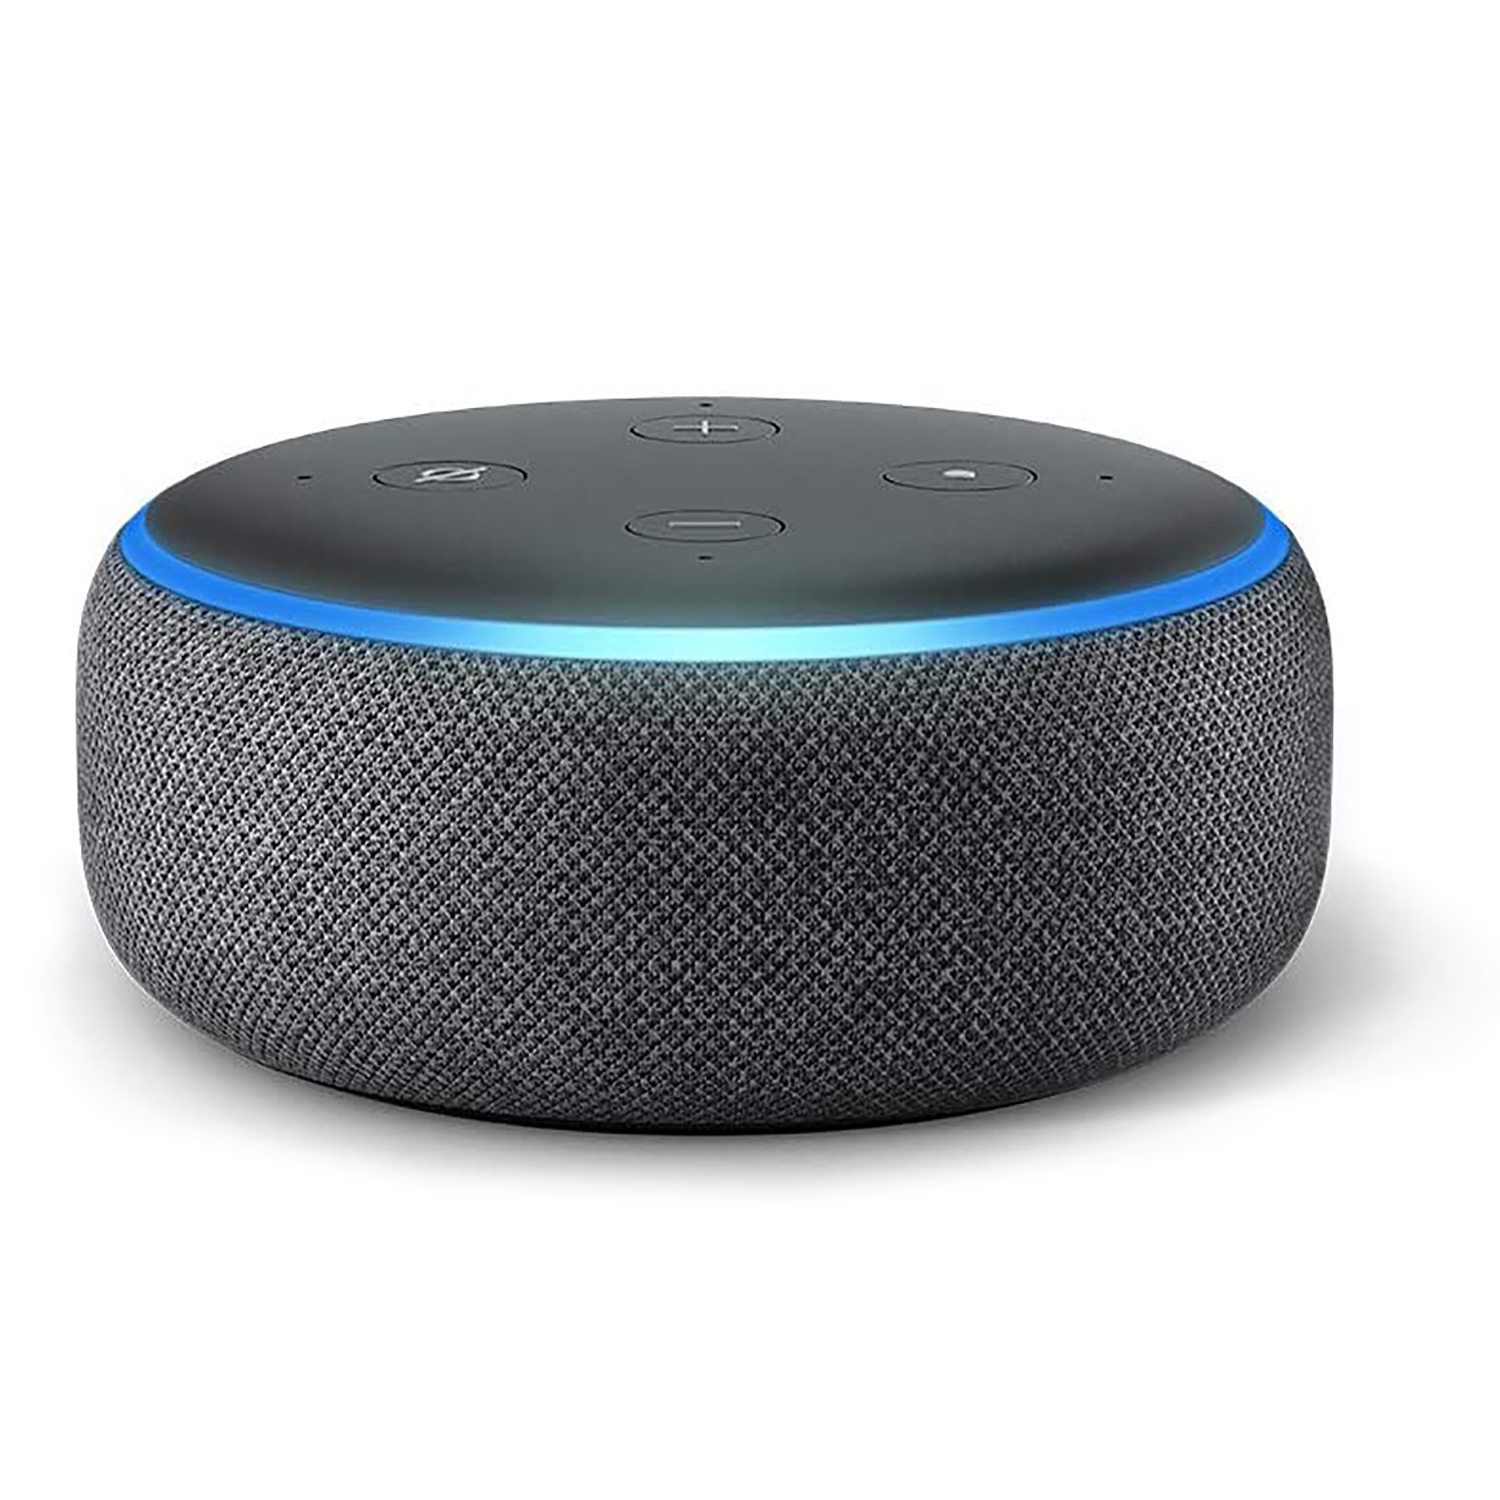 amazon prime day 2020 deals editor picks